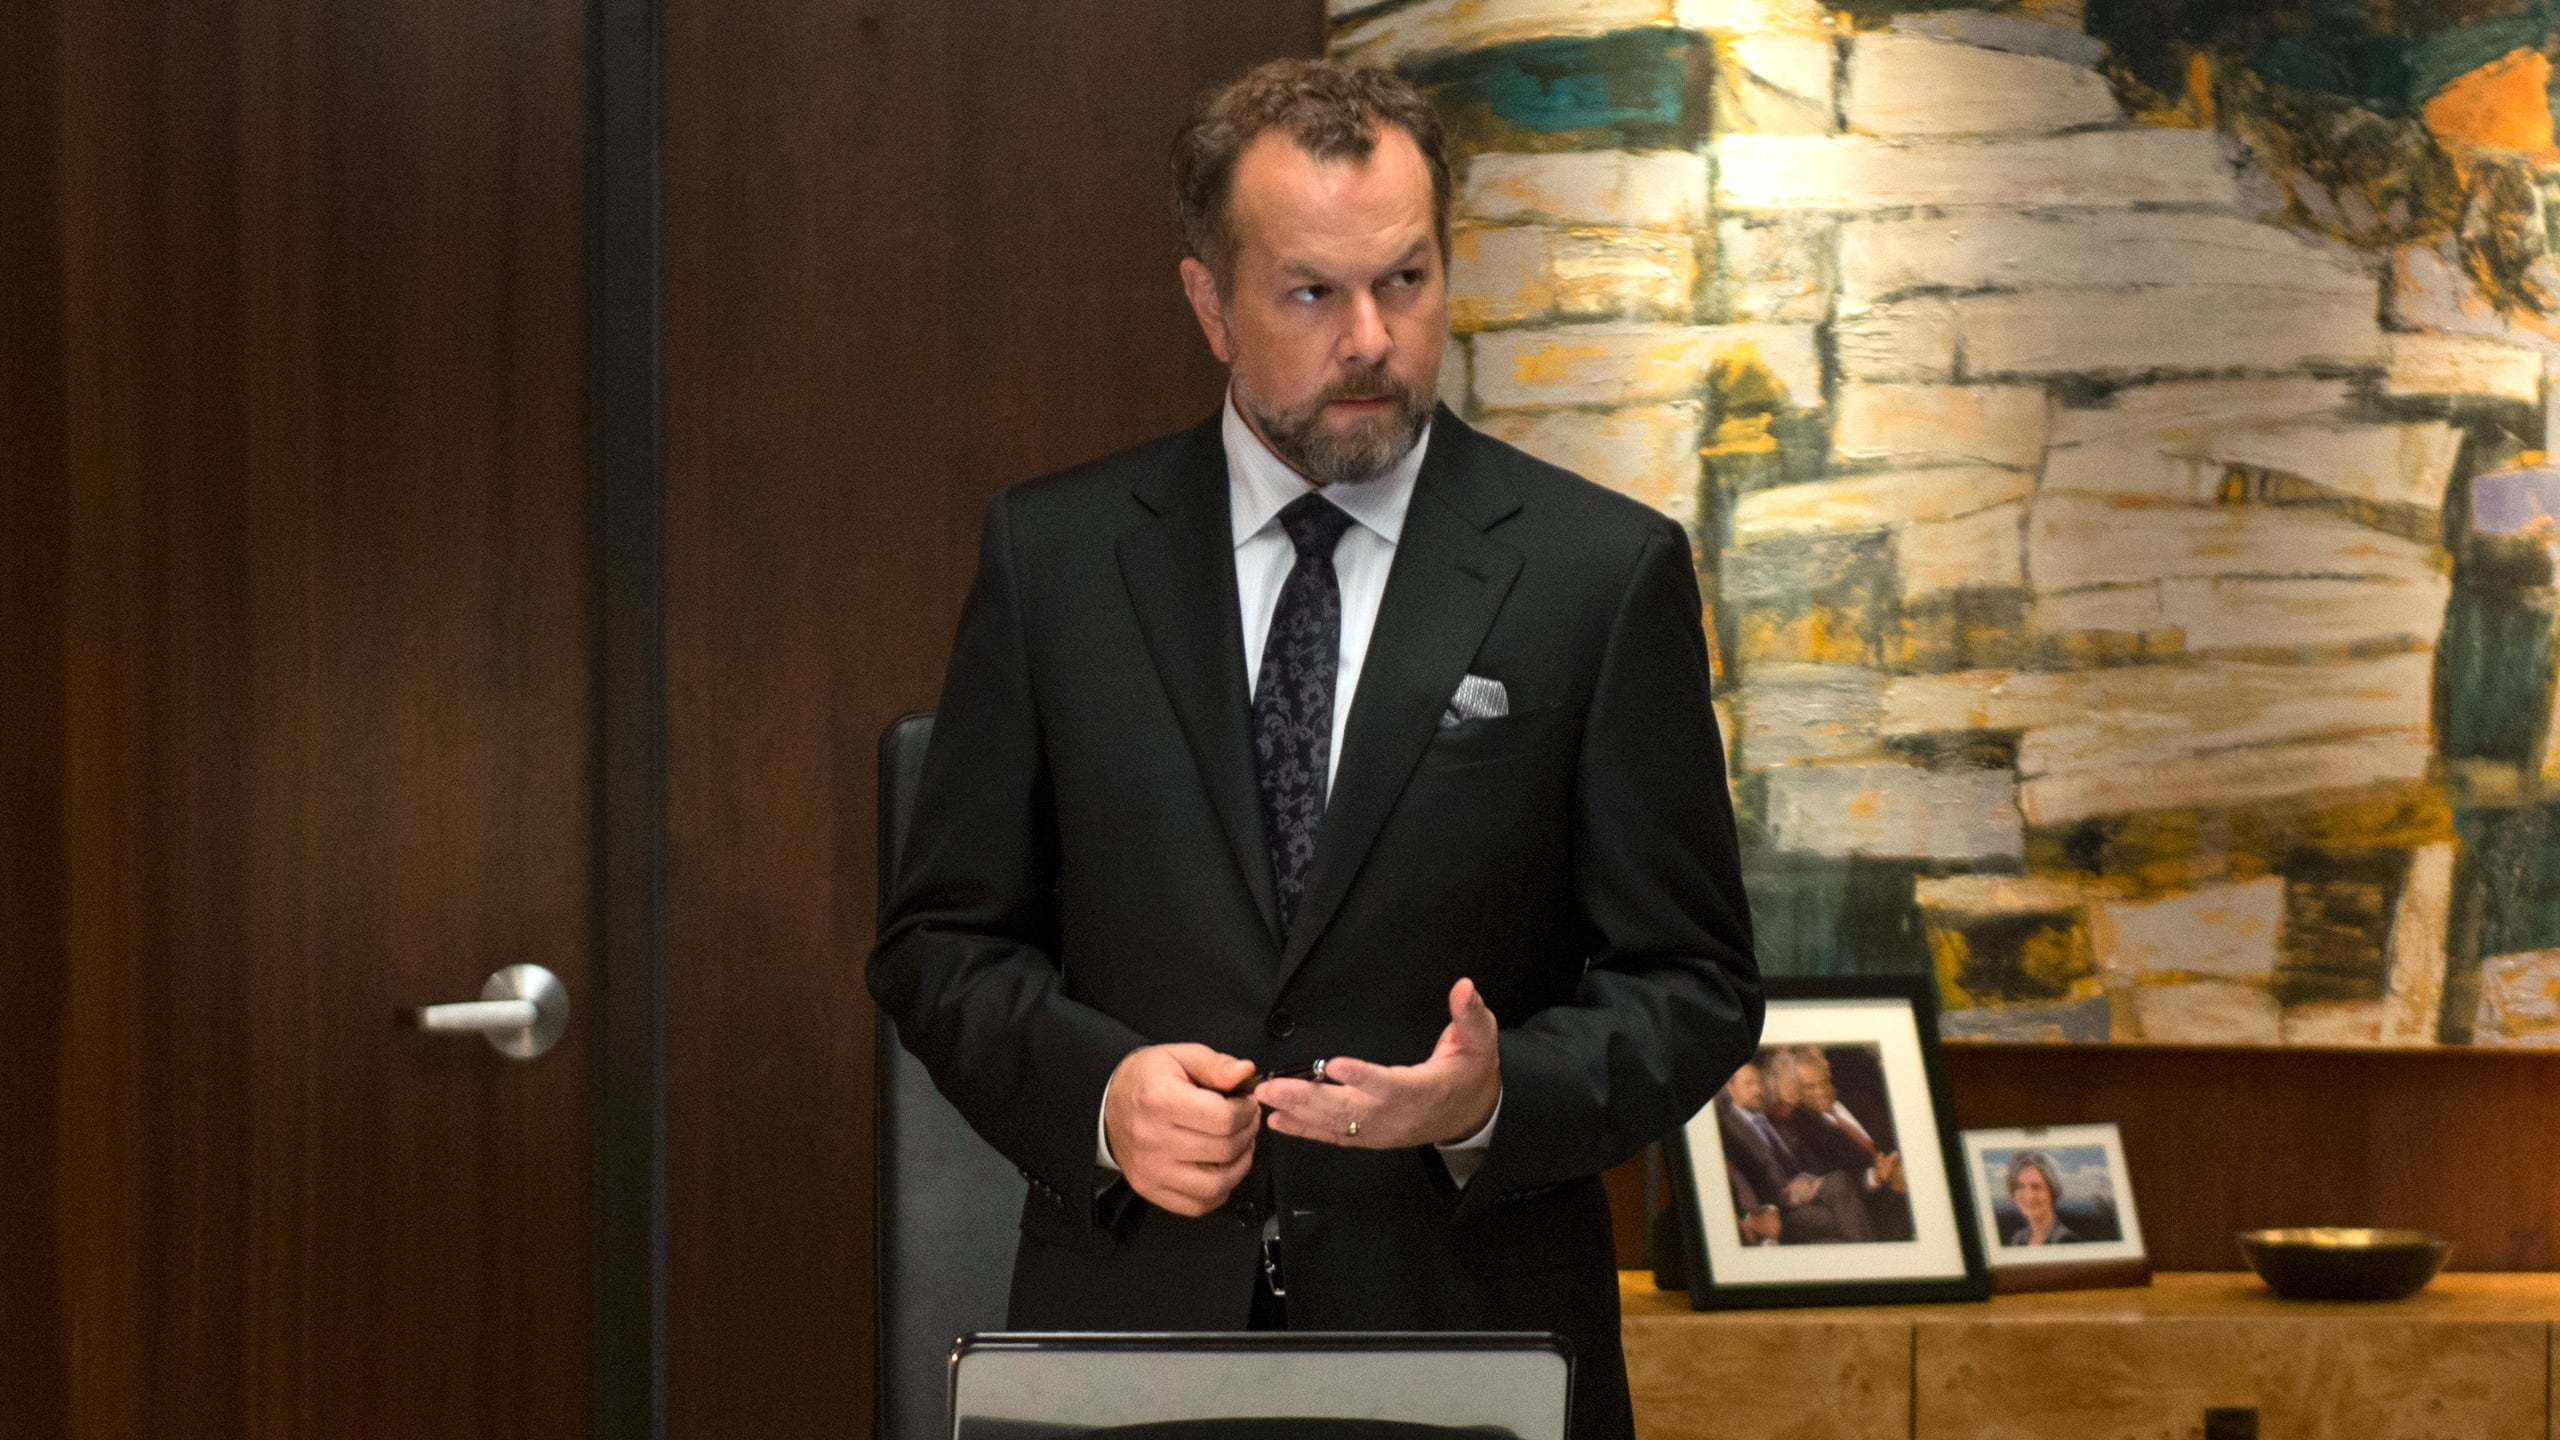 suits meet the new boss free online Episode guide for suits 2x03: meet the new boss episode summary, trailer and screencaps guest stars and main cast list and more.